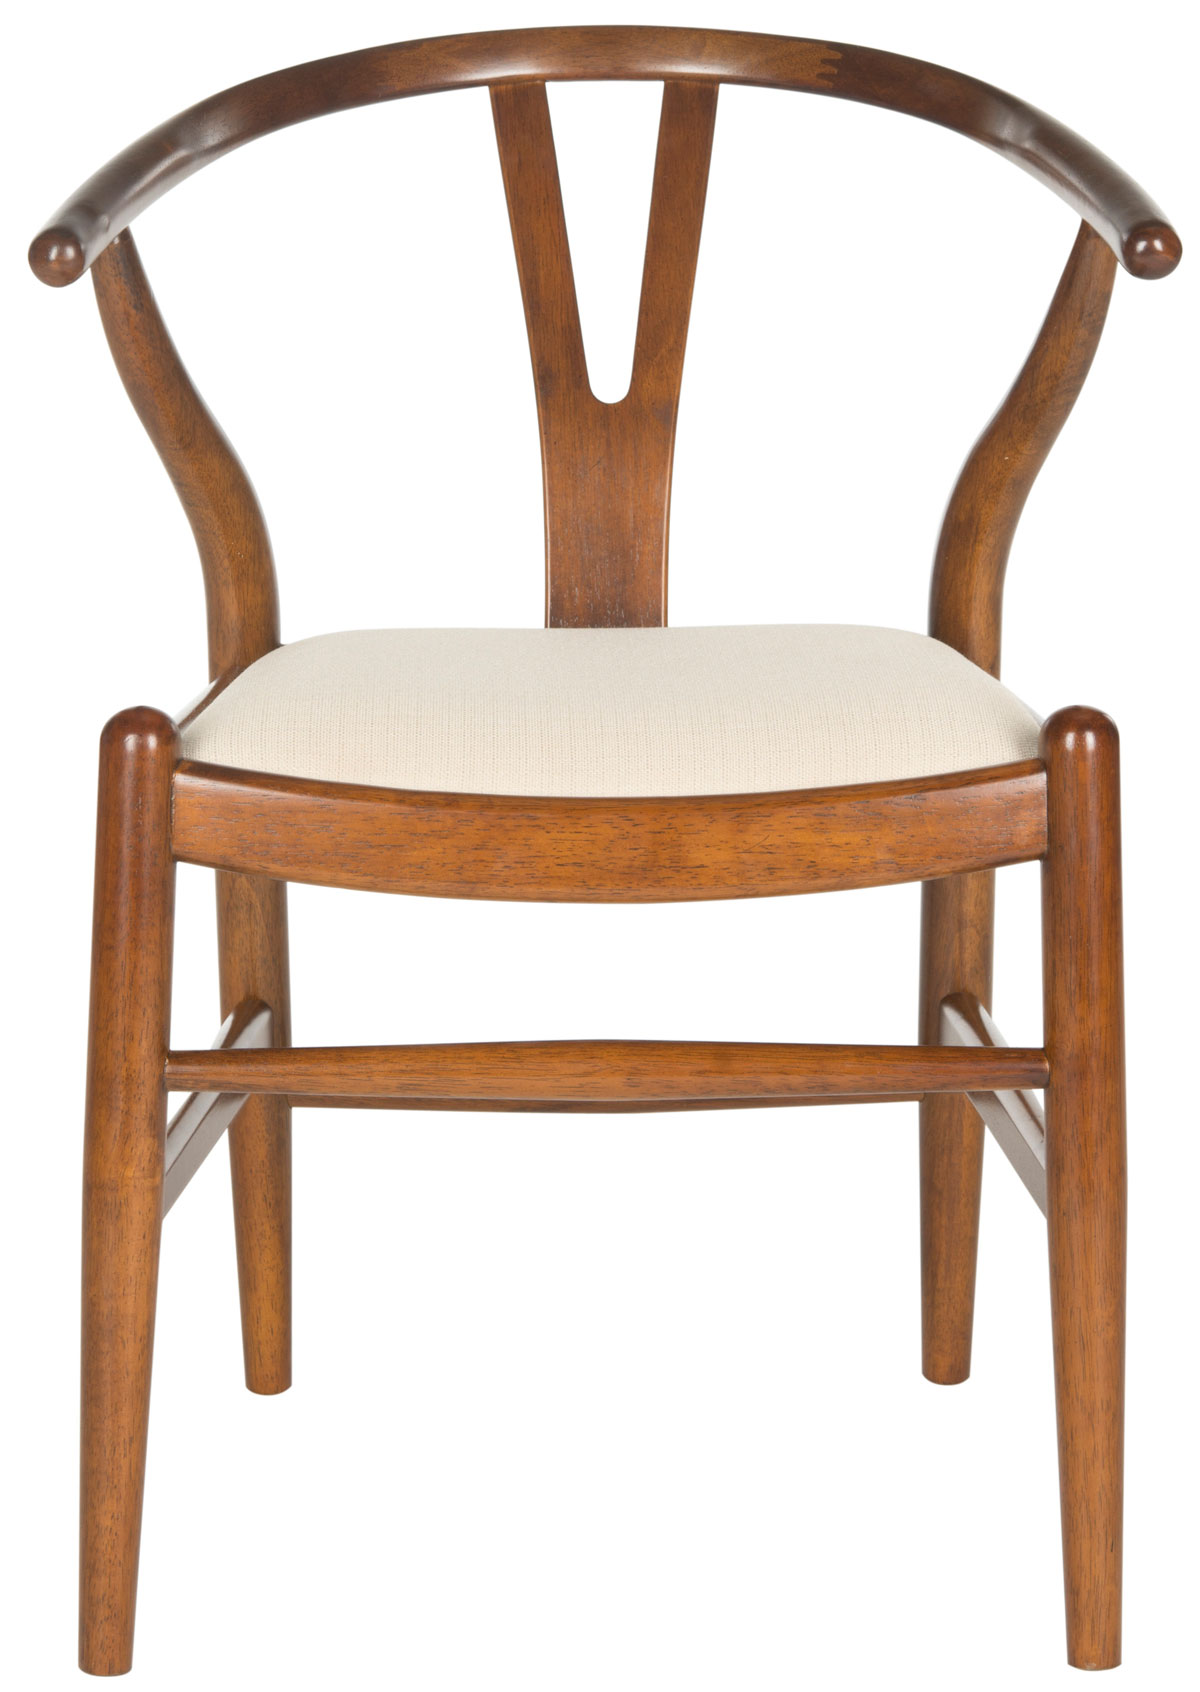 safavieh dining chairs fabric garden sea6000c set2 furniture by share this product